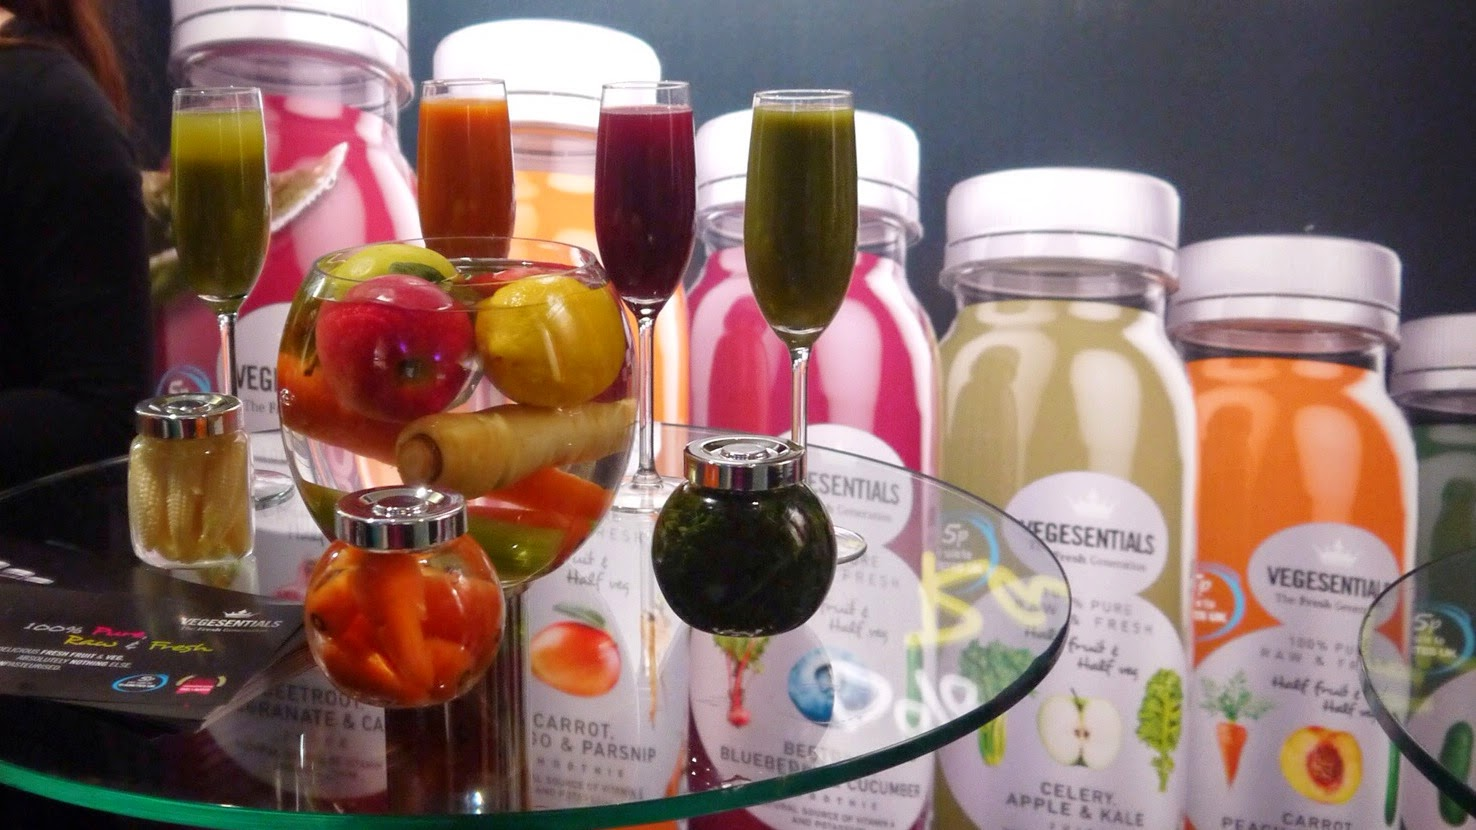 Vegesentials Fruit & Vegetable Juices at Be:Fit London